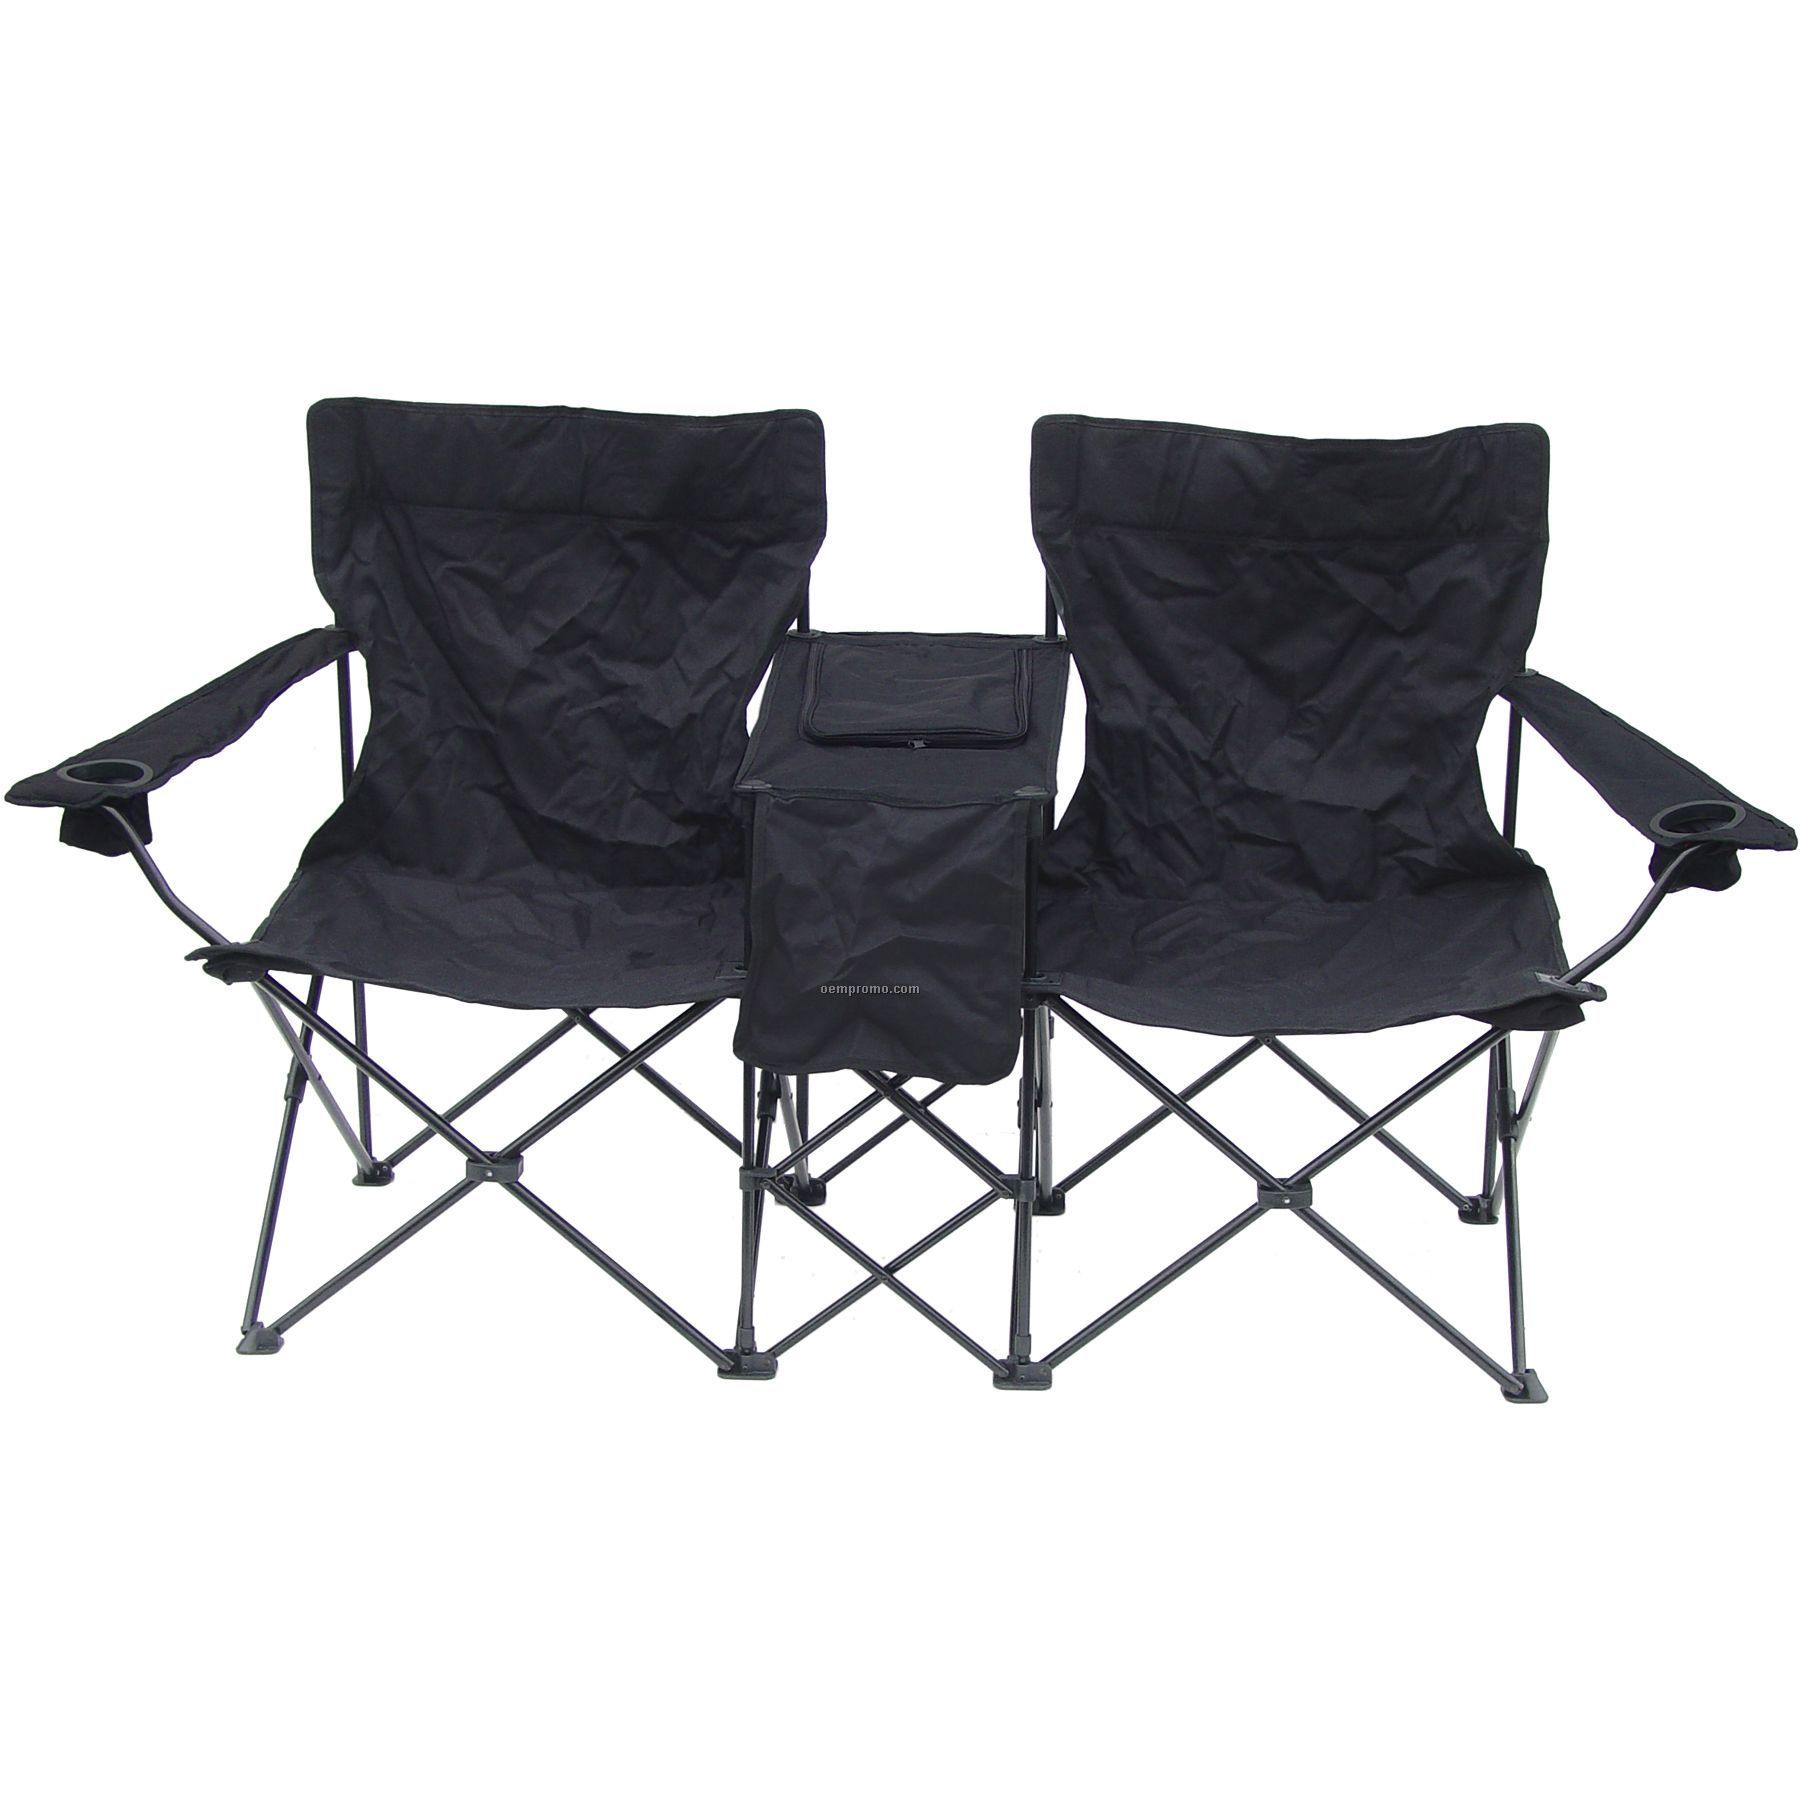 wholesale folding chairs chair covers for hire liverpool direct import double with center table and